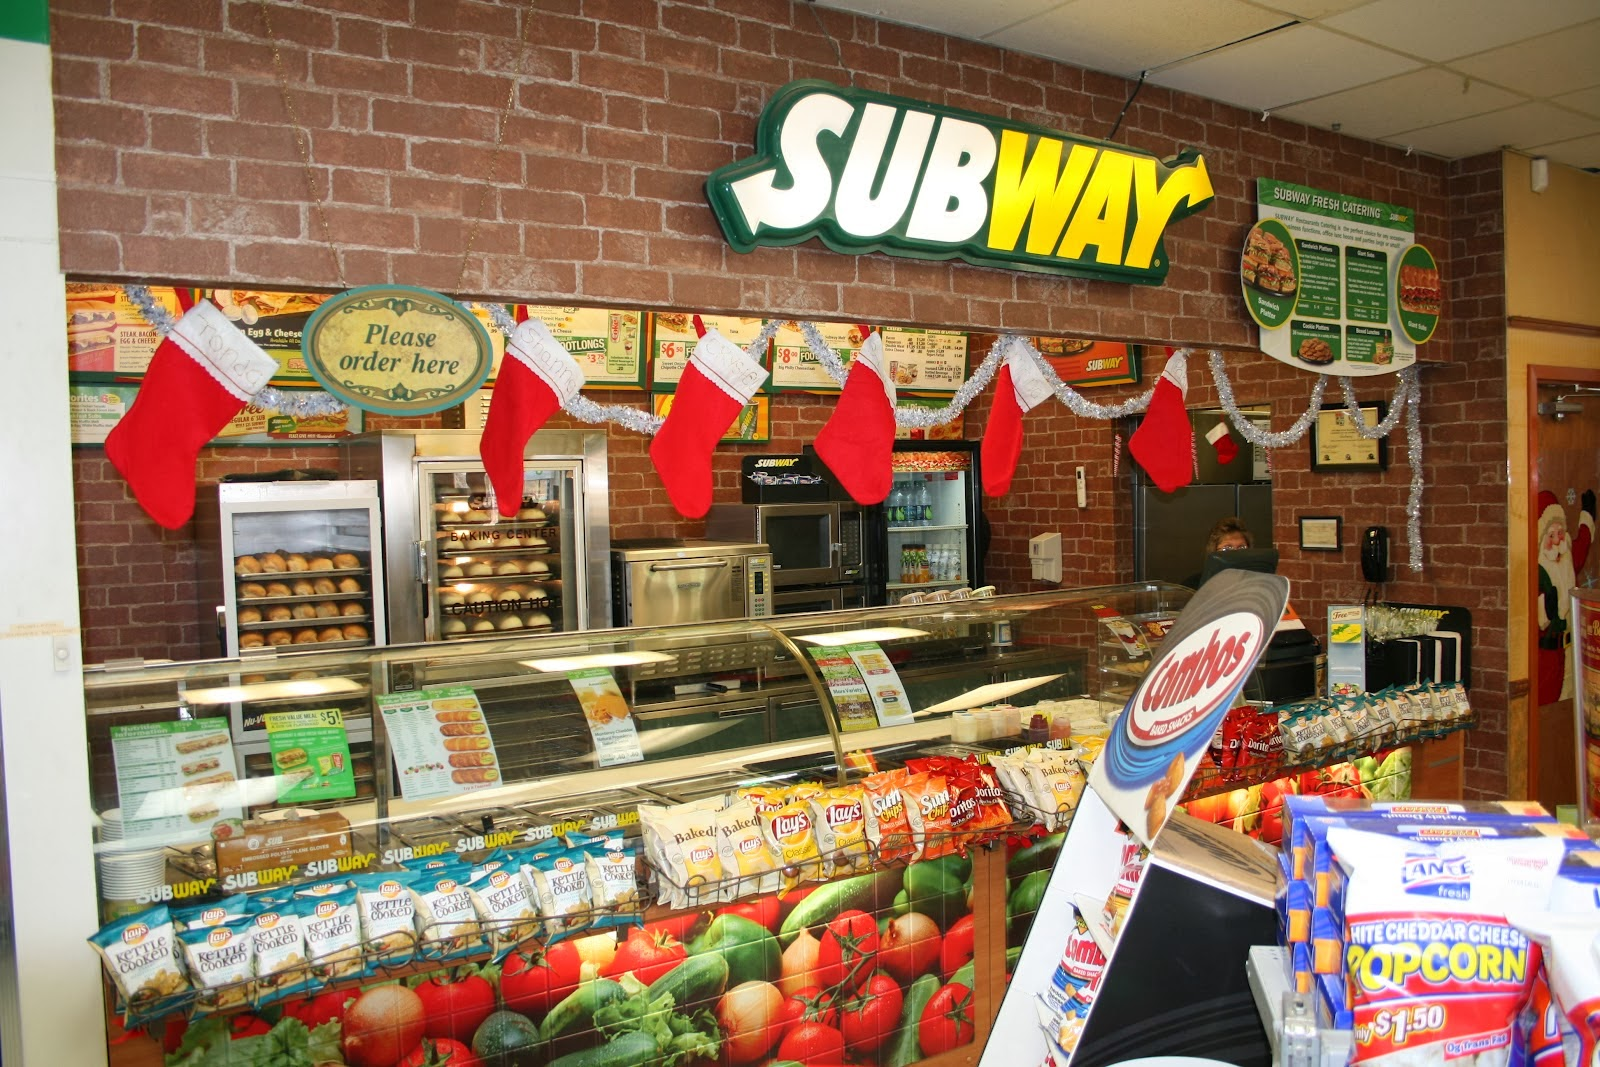 subway restaurants globalization Subway, suffering through its biggest slump in years, is testing just how sprawling a fast-food chain can get before it becomes too big.